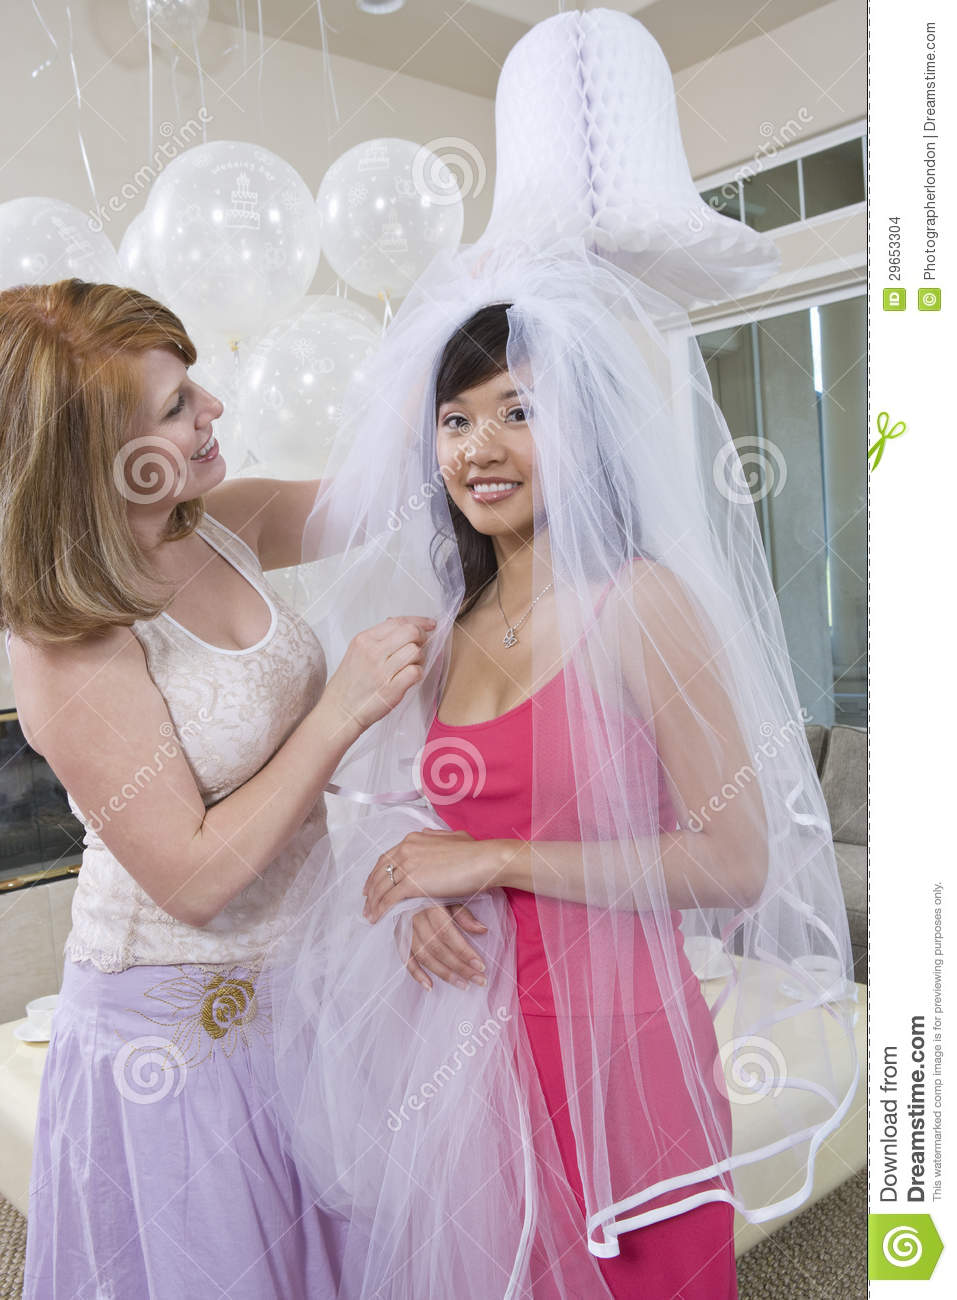 Woman Helping Bride In Dressing Up At Hen Party Stock Photo